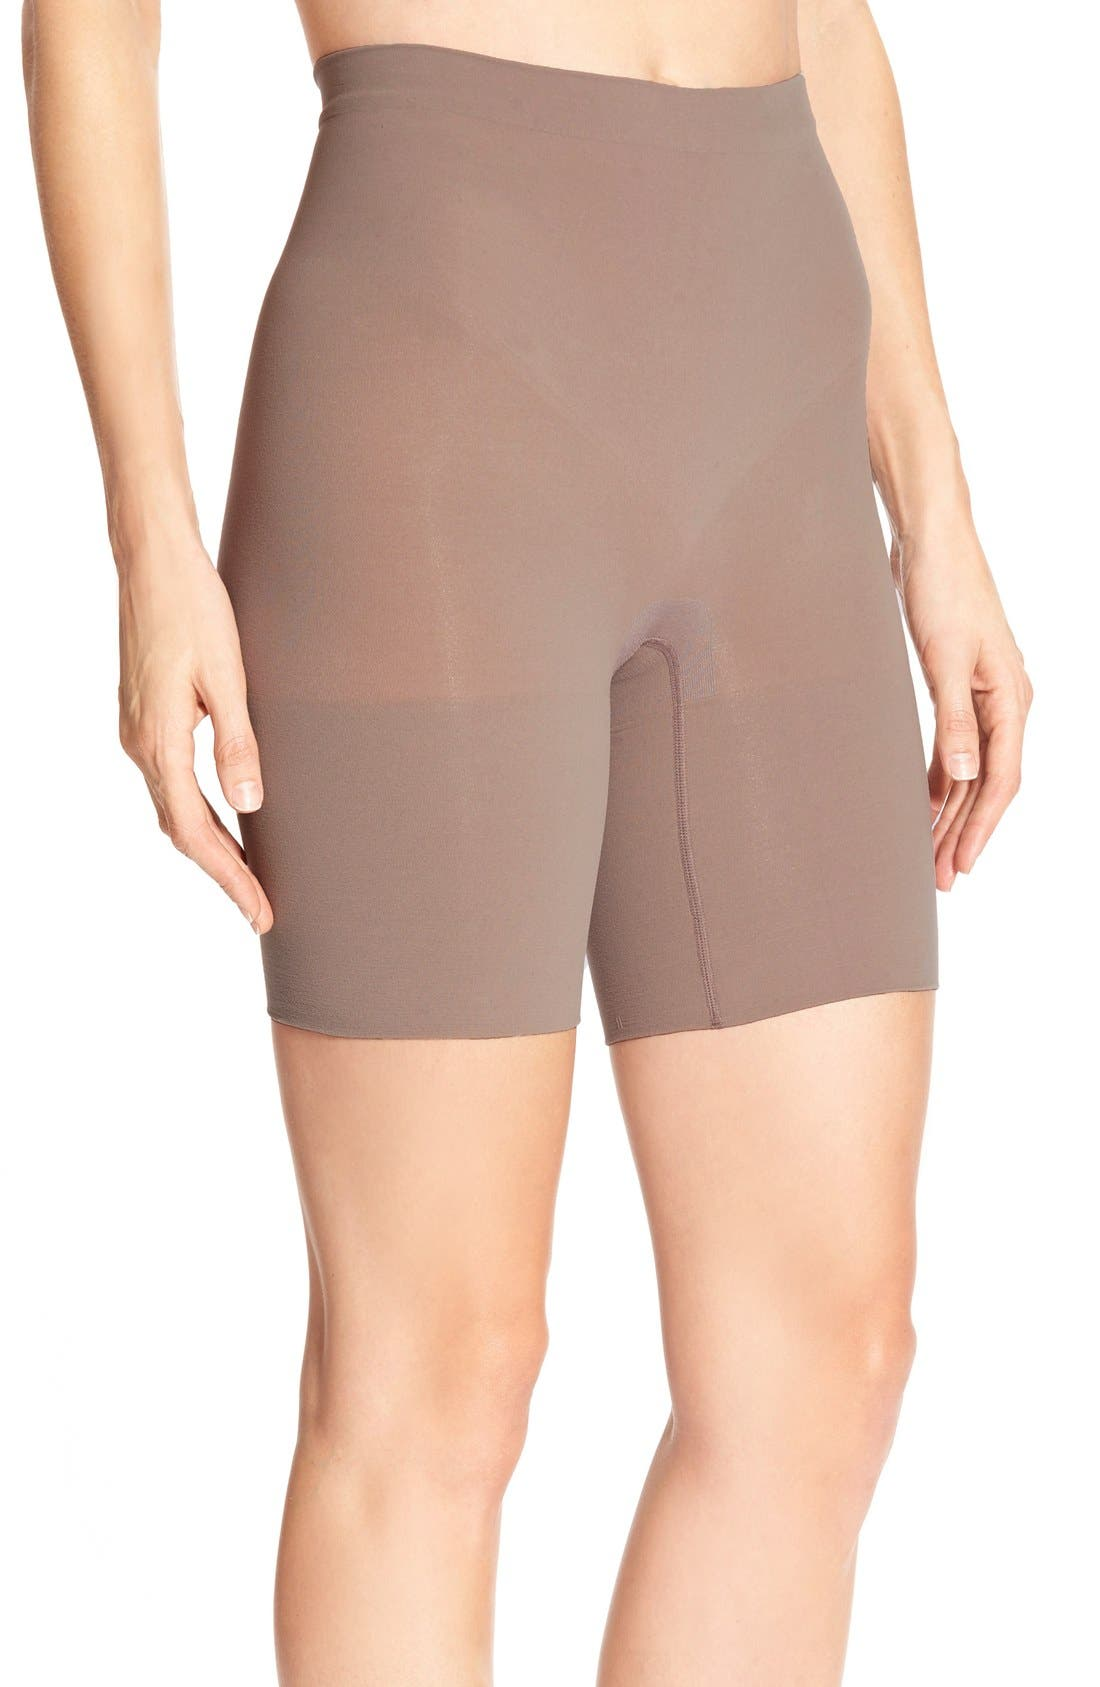 Main Image - SPANX® Power Short Mid Thigh Shaper (Regular & Plus Size)